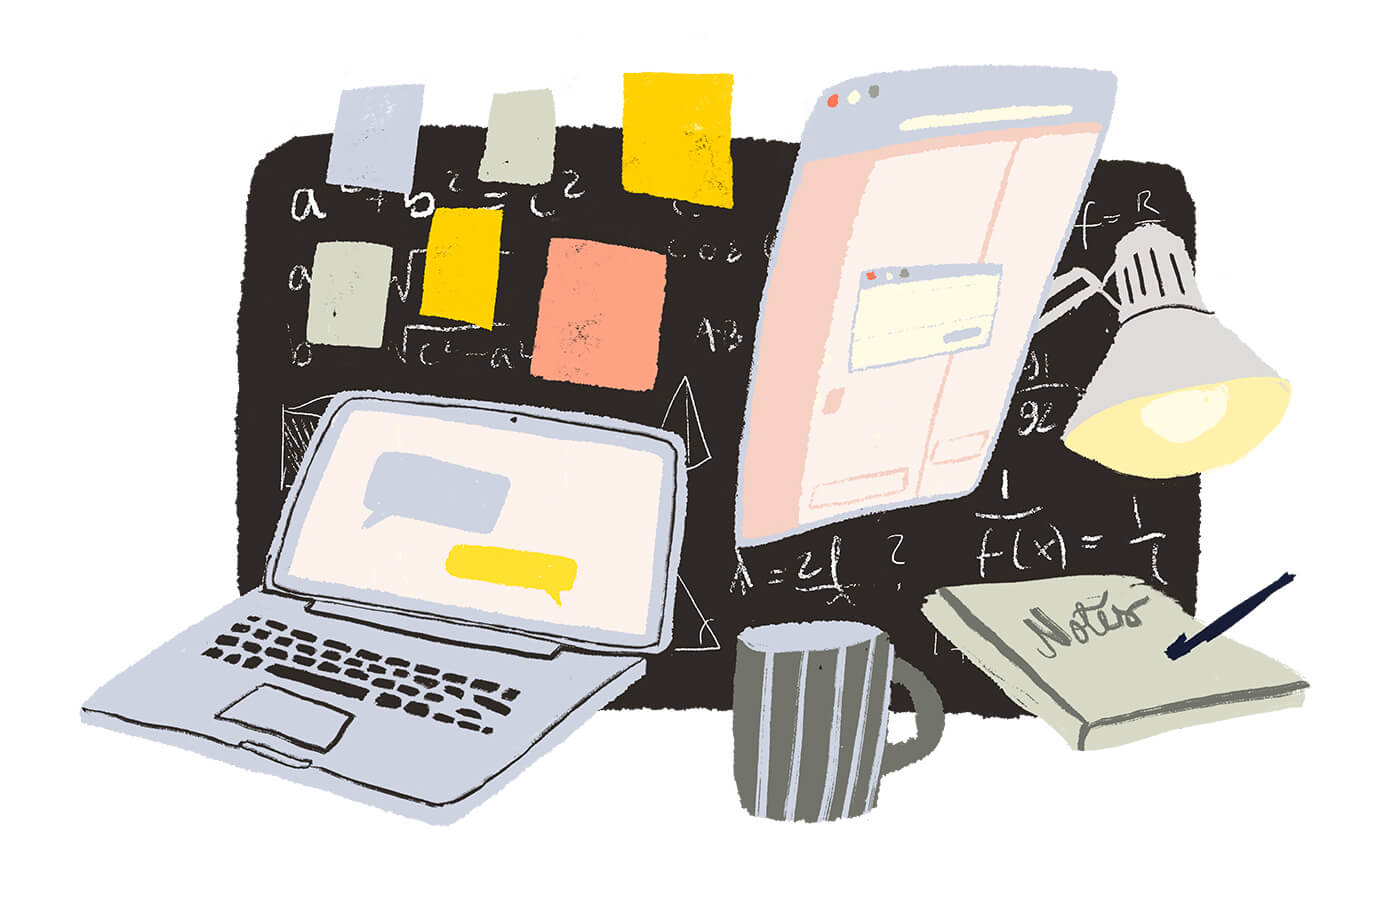 An illustration of a laptop, a coffee cup, a post-it board, a lamp etc.